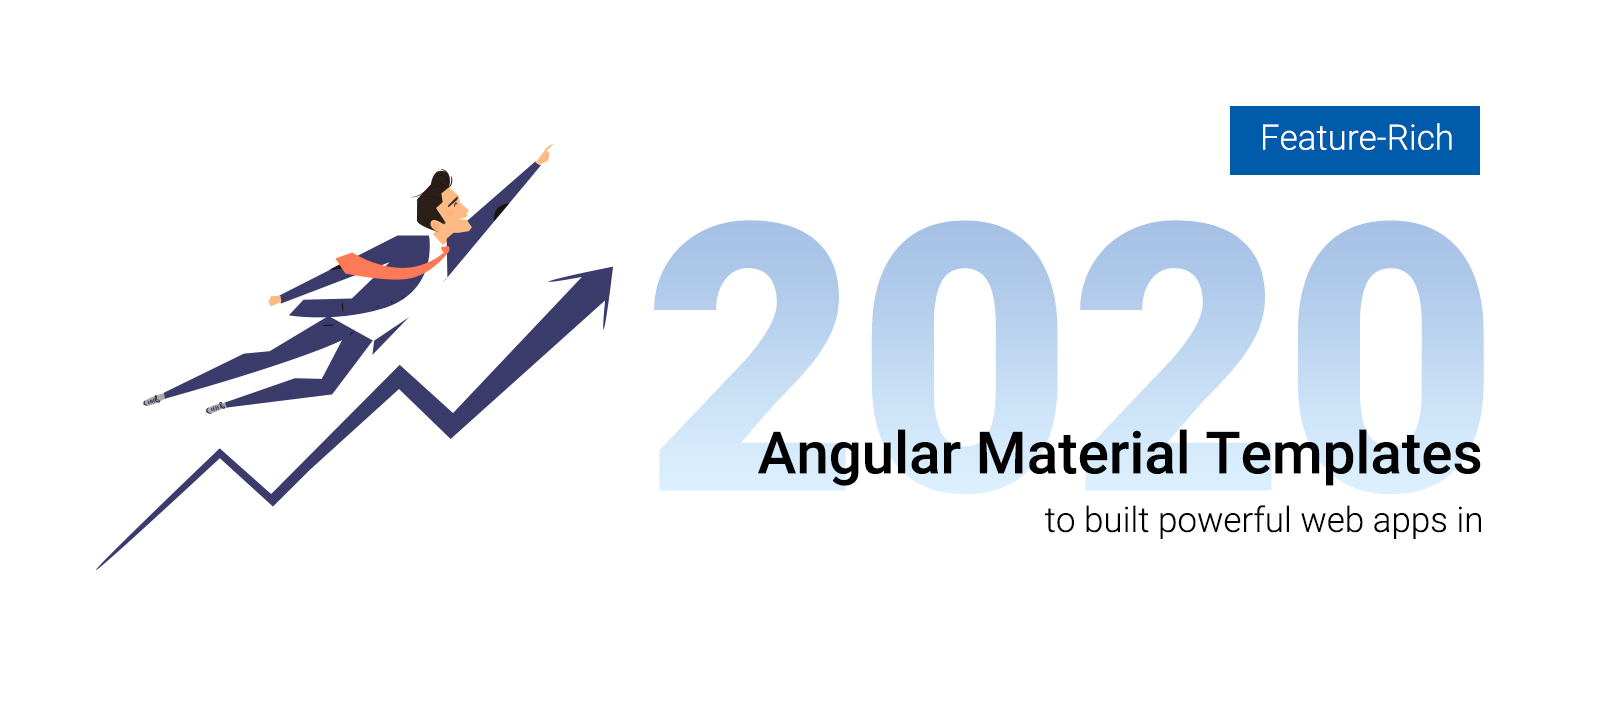 Feature-Rich Angular Material Templates To Build Powerful Web Apps in 2020